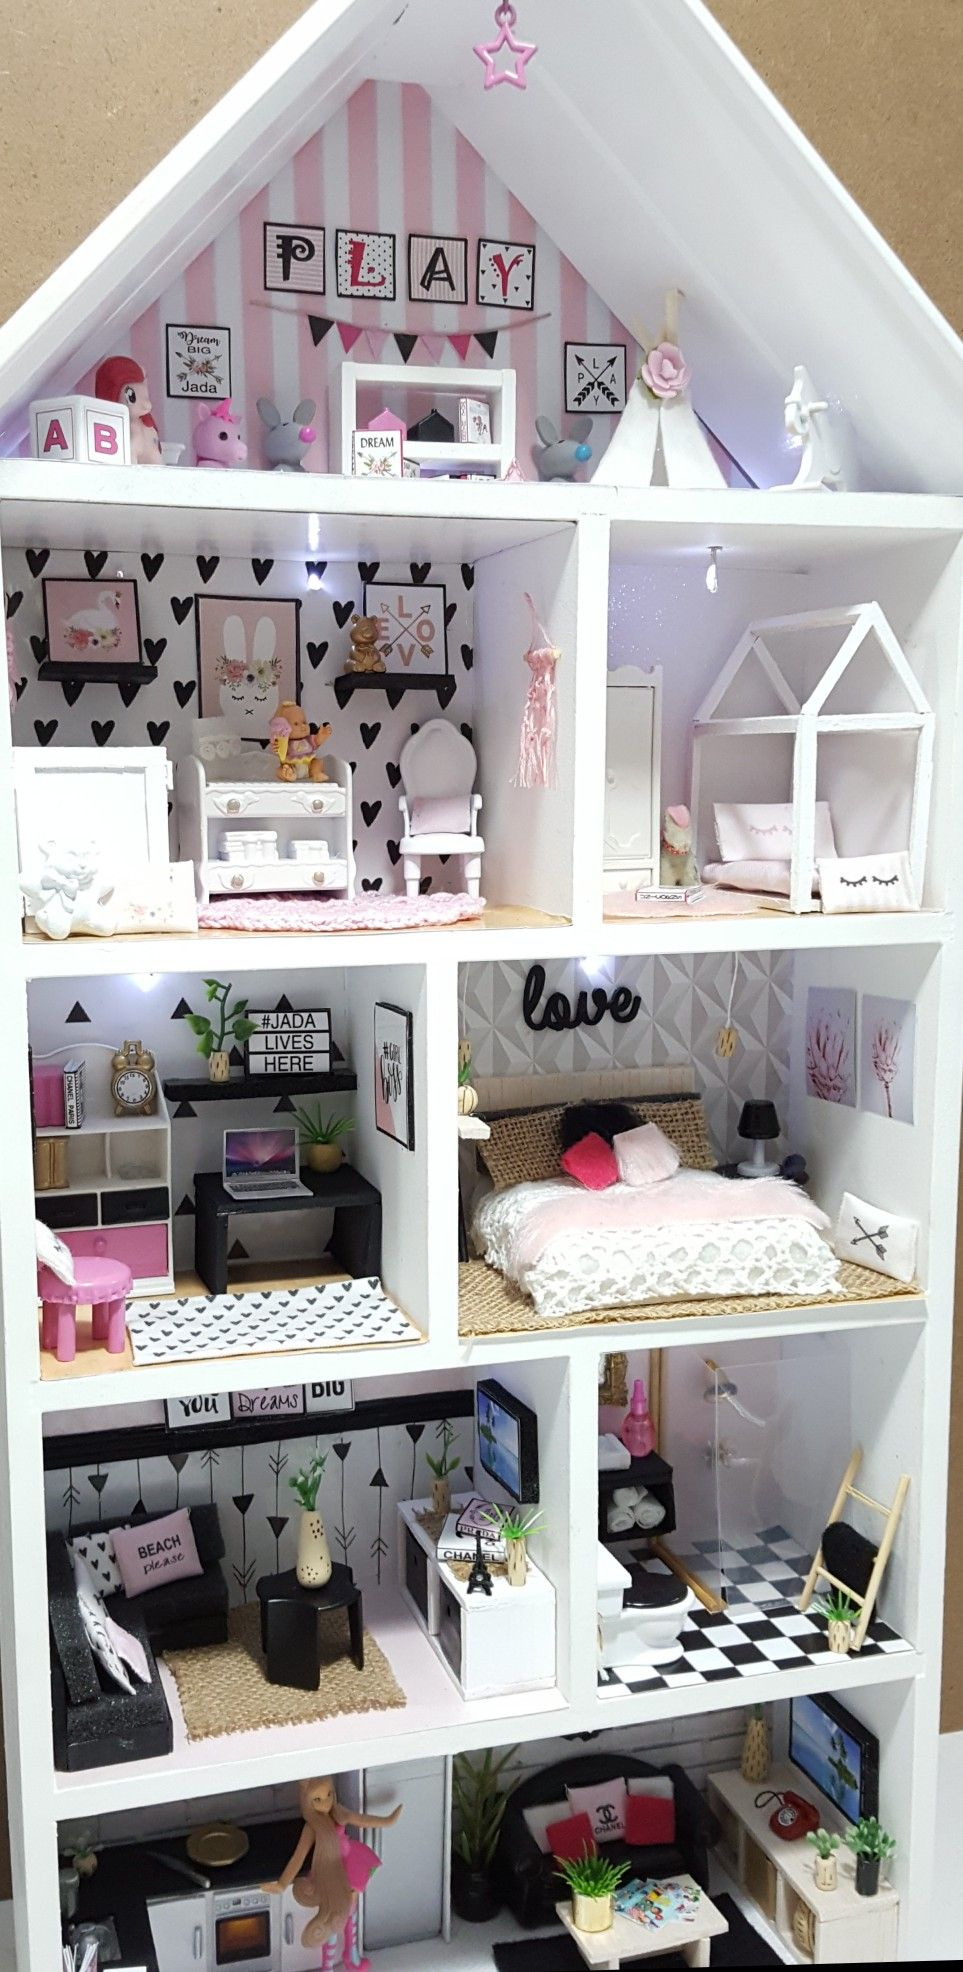 Kmart Dollhouse Hack Using The Wall Shelf Had Fun Making Miniature Furniture Decorating This Doll House Plans Dolls House Interiors Diy Dollhouse Furniture